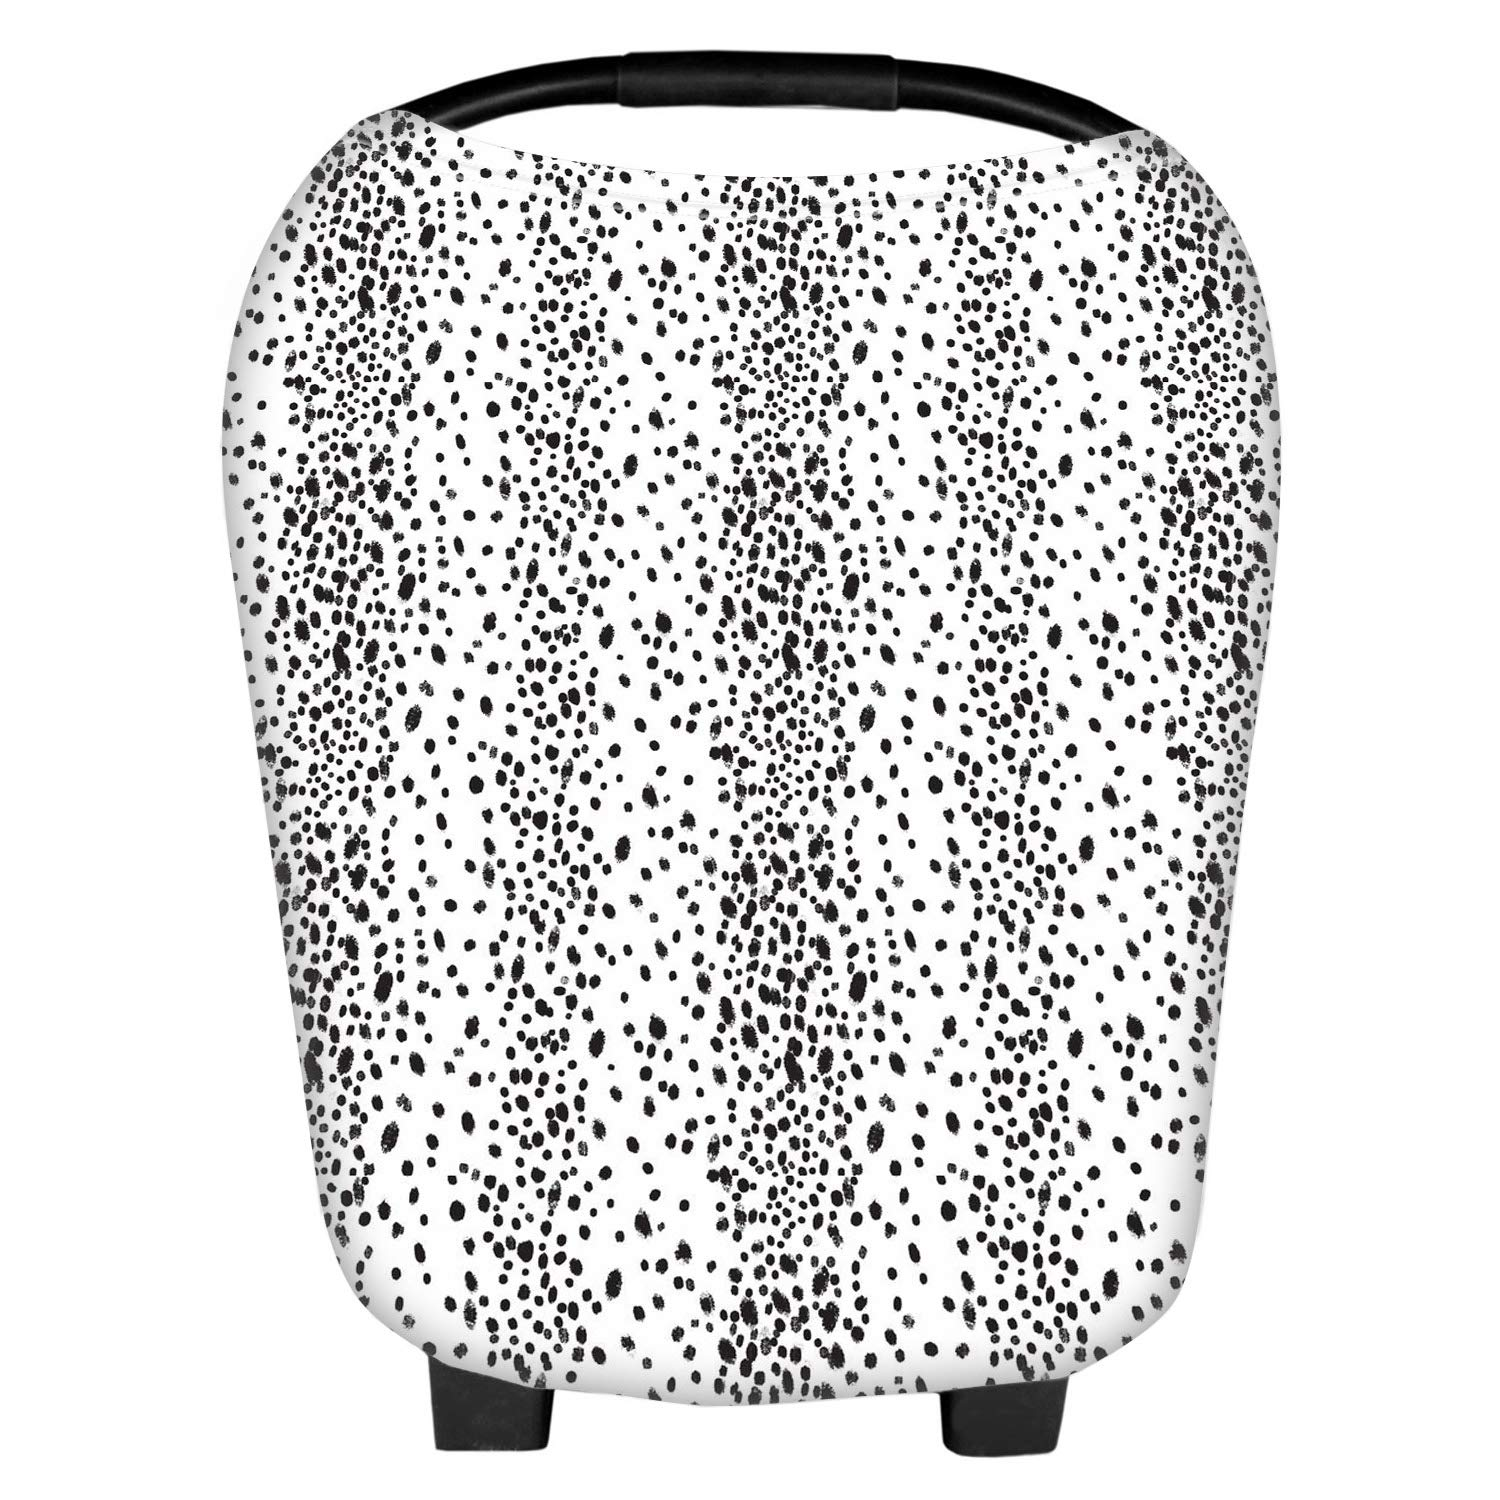 Nursing Cover Carseat Canopy Super Soft Stretchy Cover Multi Use for Newborn Boys Girls Shopping Cart Cover Scarf Light Blanket Stroller Cover Cross